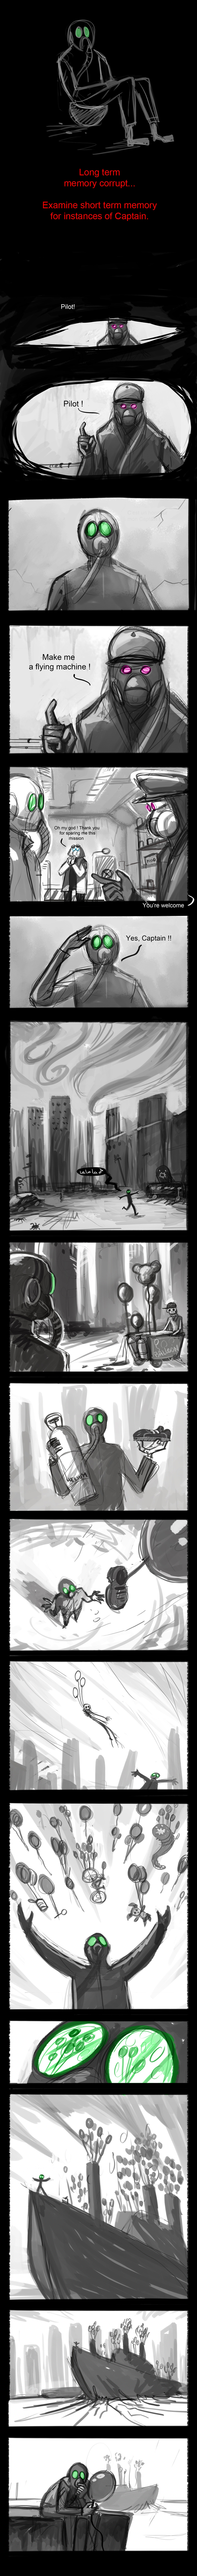 Romantically Apocalyptic Issue 62-63 Storyboard by Grimhel